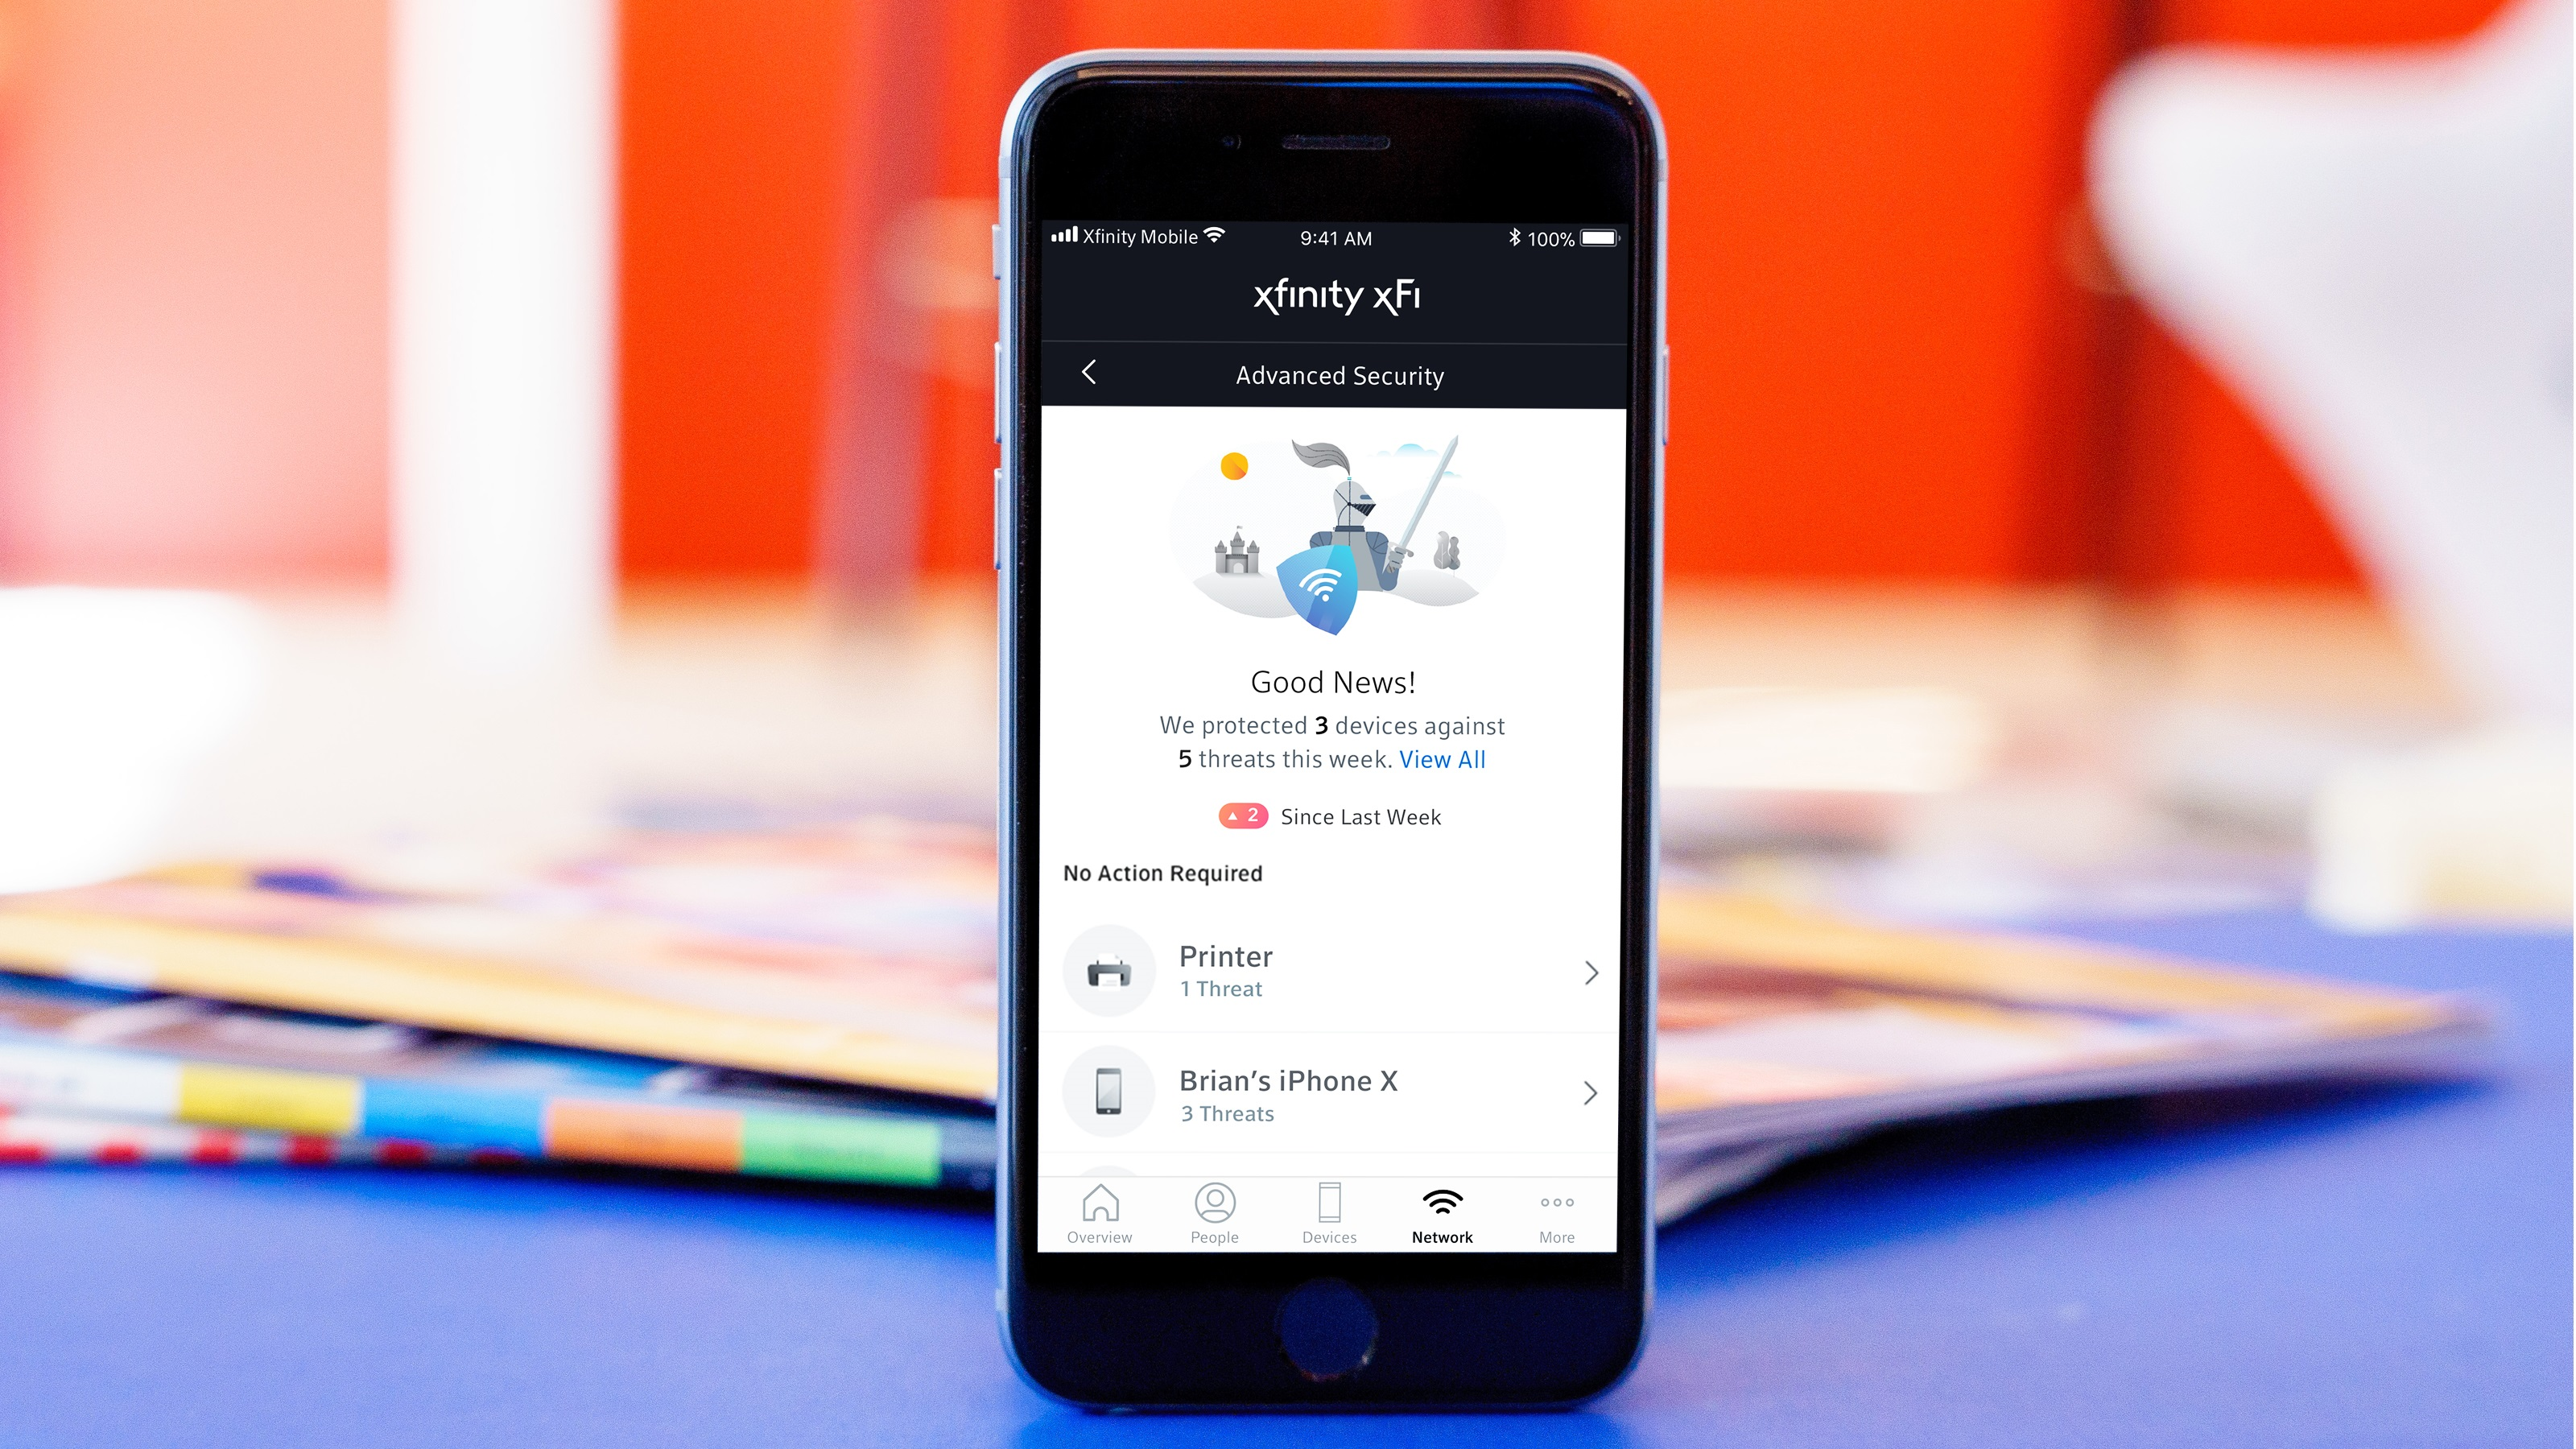 The Xfinity xFi Advanced Security app displayed on a mobile phone.